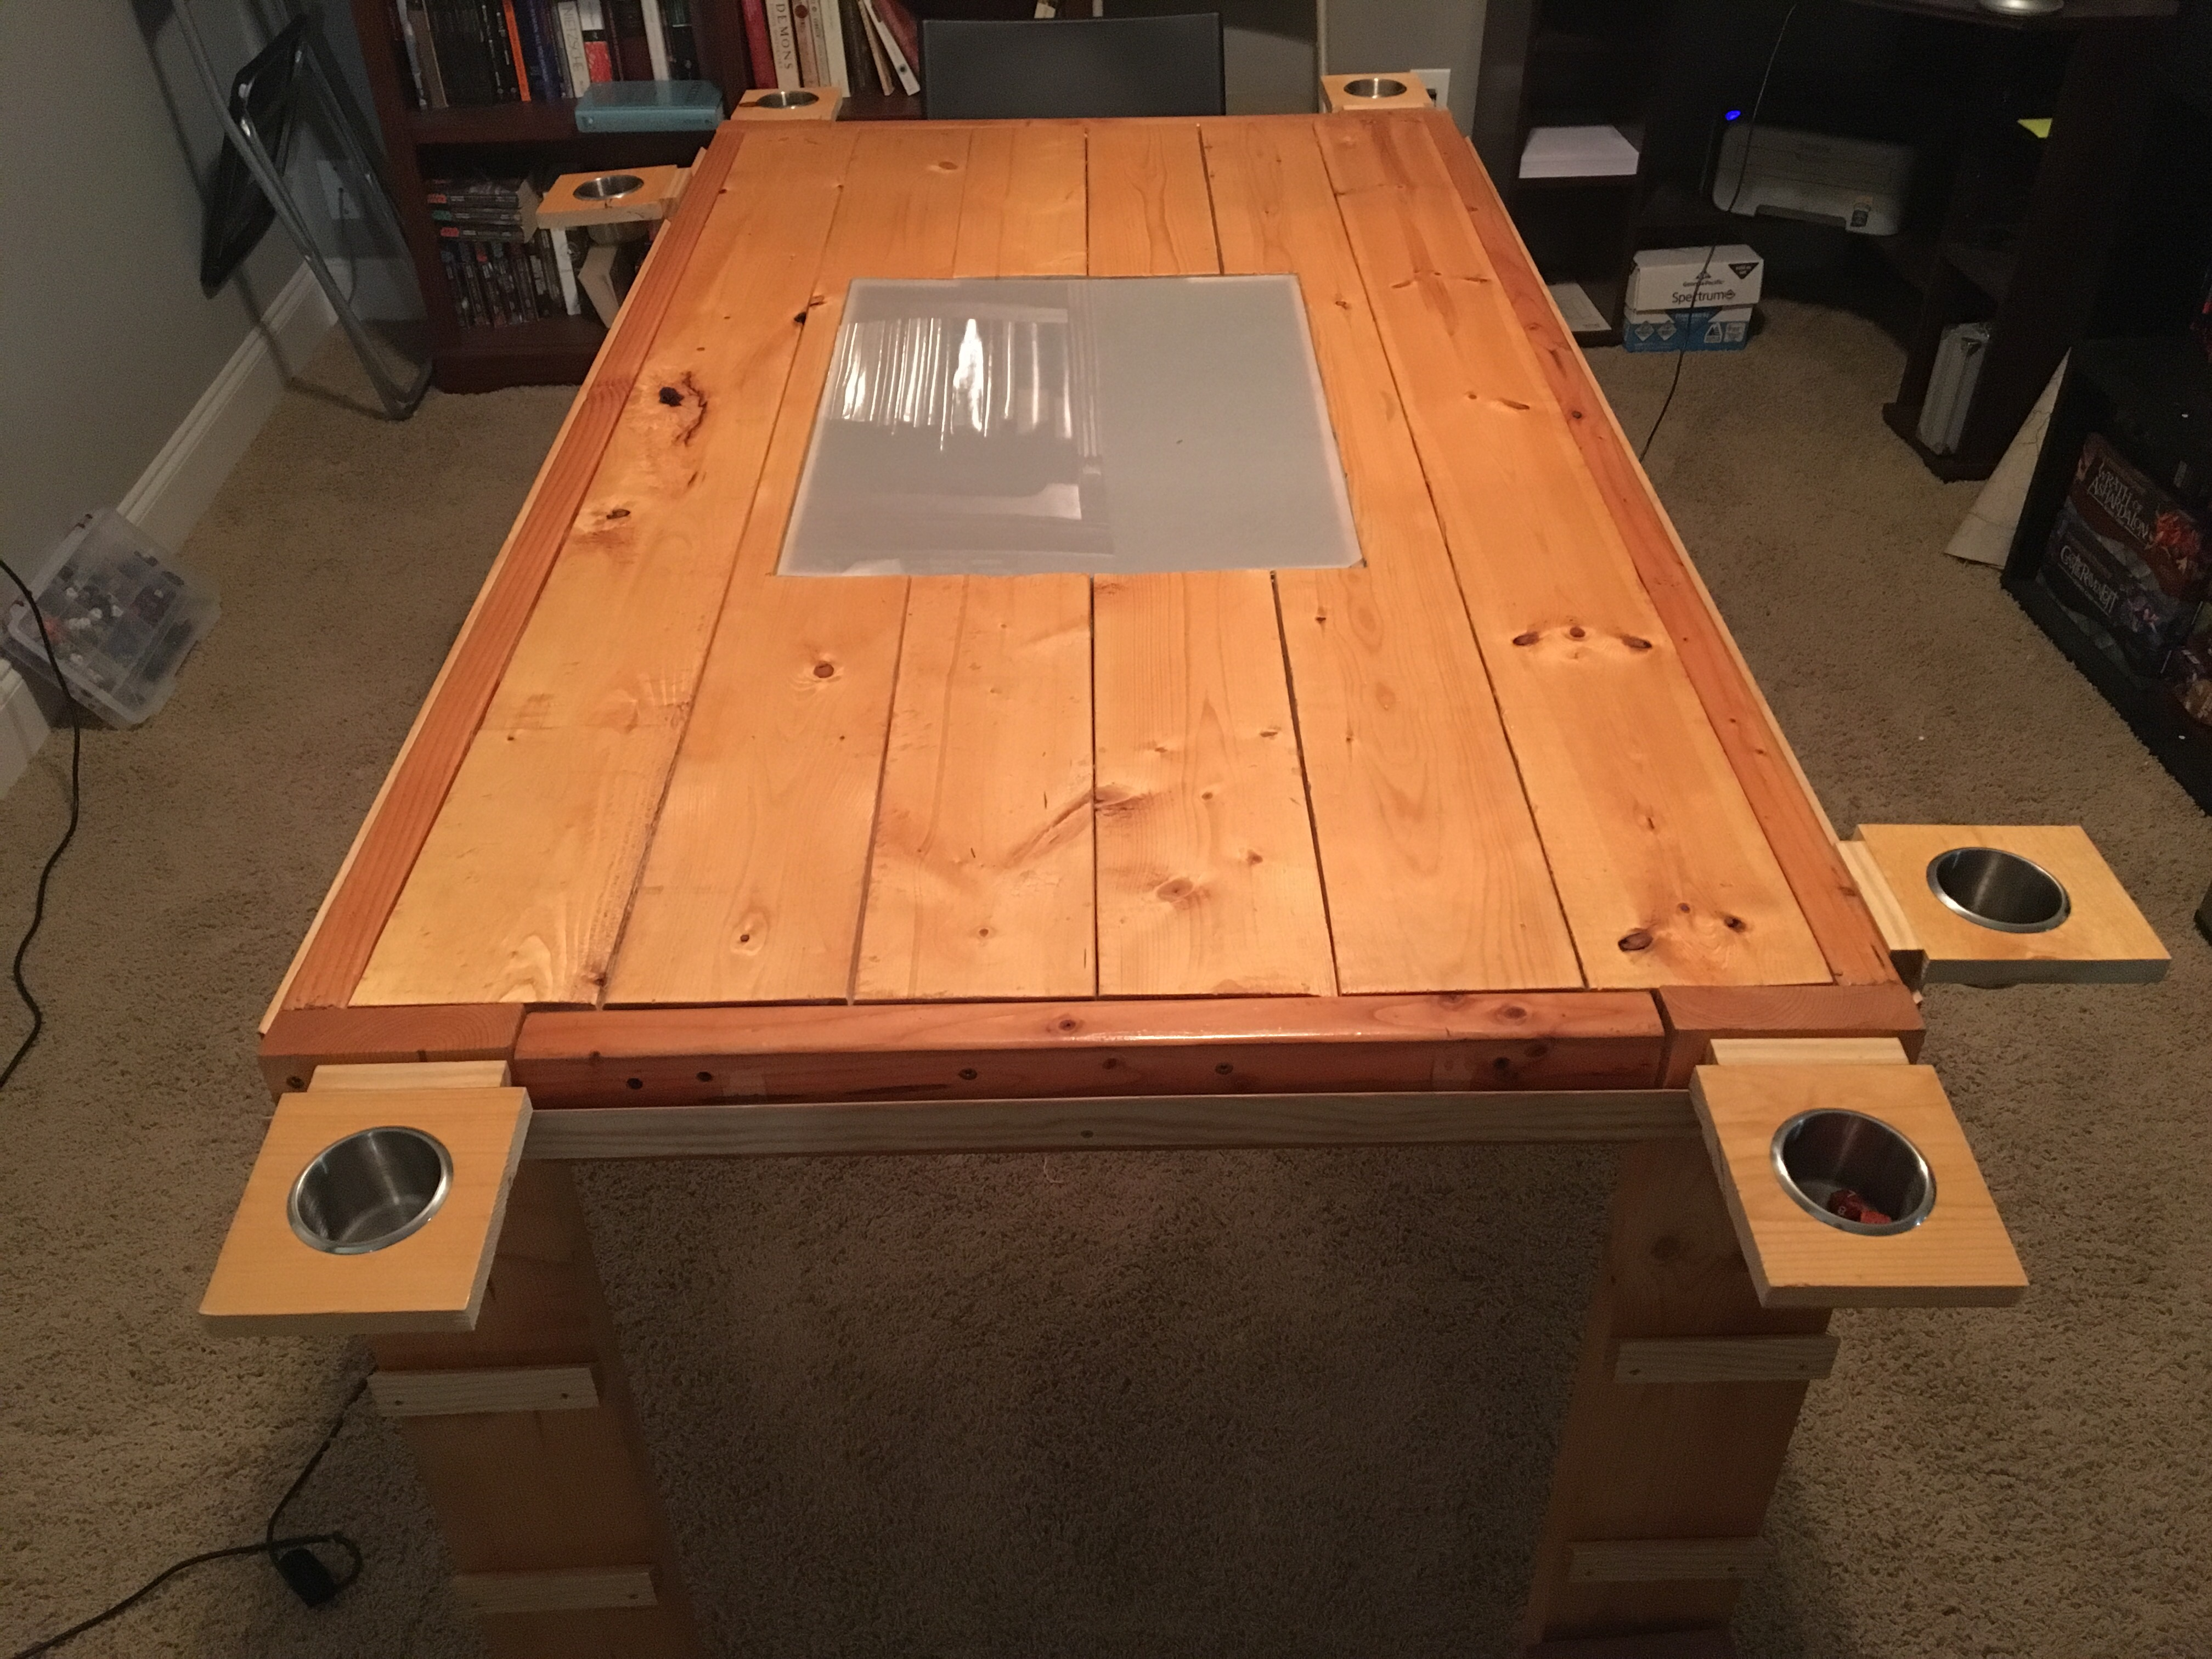 In Part 1 I Explained How I Made The Original Version Of This Table. The  Plans For The Base Table Can Be Found On Ana White.com.